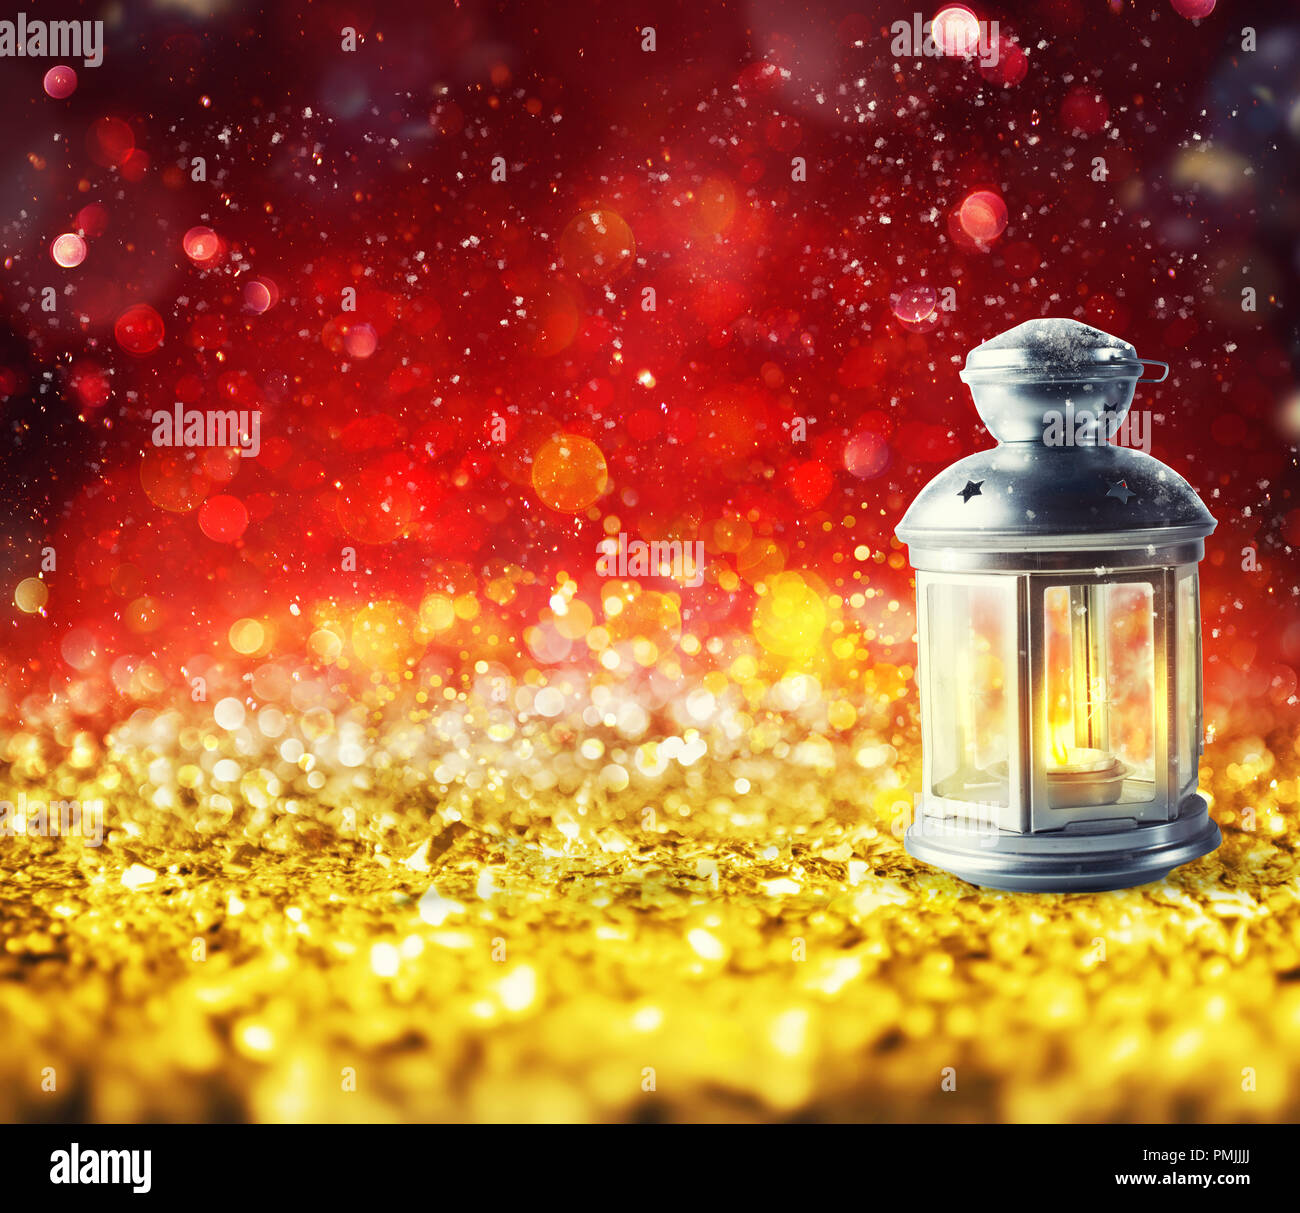 Shiny lantern on a Christmas sparkle background - Stock Image